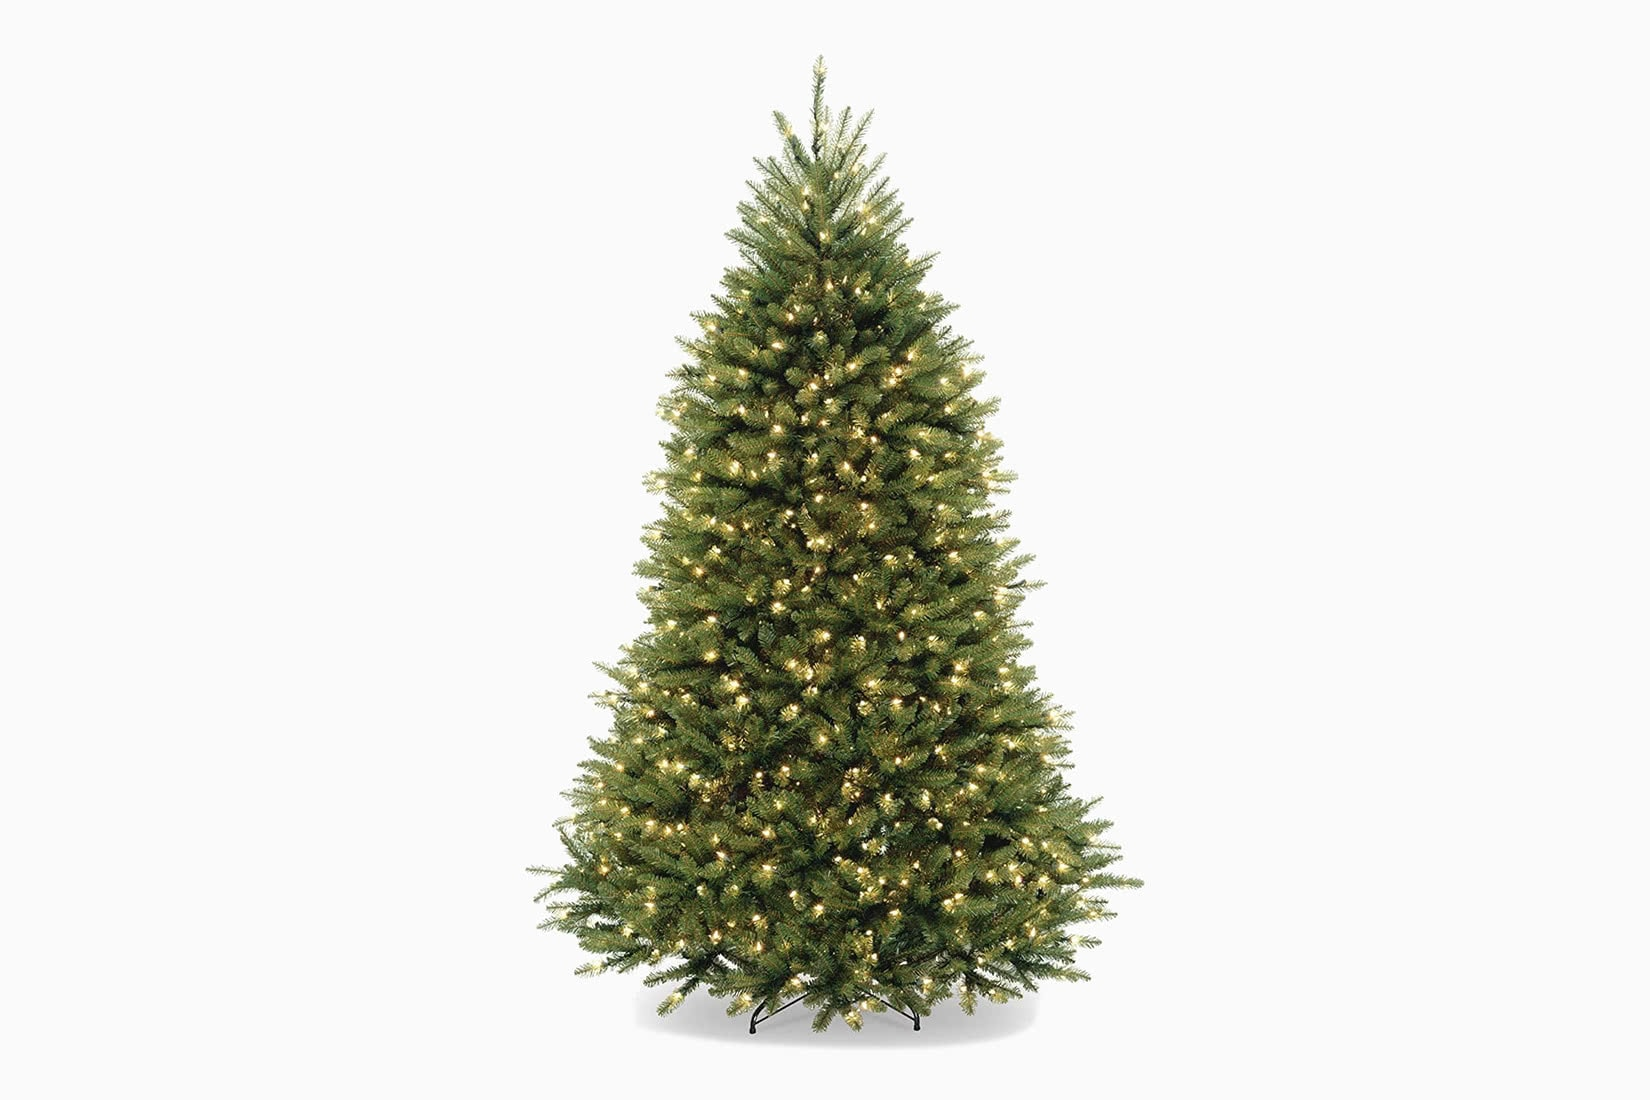 best artificial Christmas tree national tree company 5.6 review - Luxe Digital